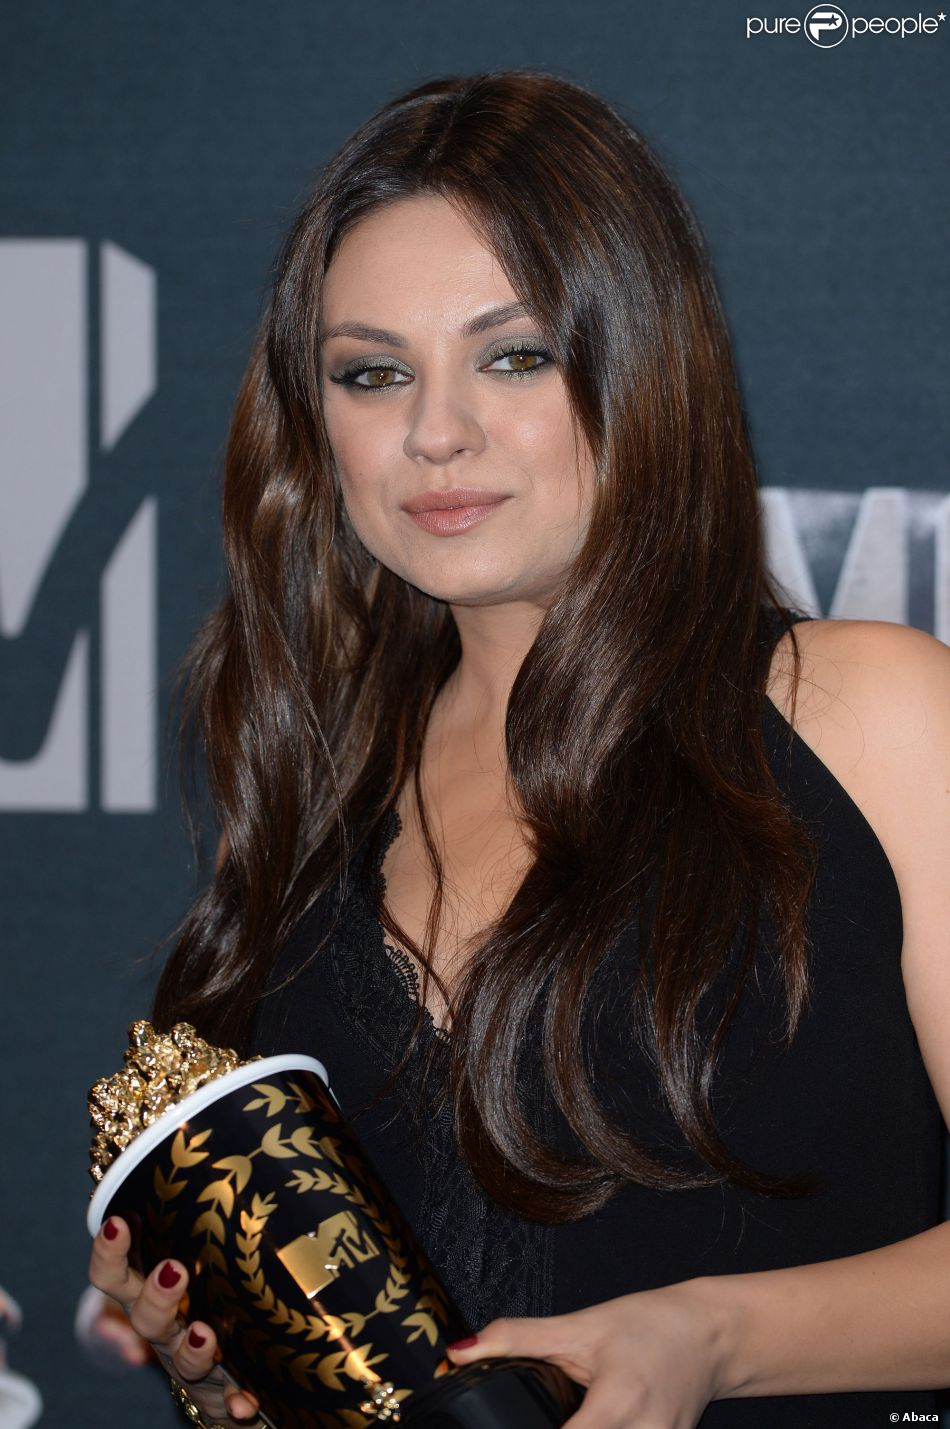 Mila Kunis lors des MTV Movie Award 2014 au Nokia Theatre à Los Angeles, le 13 avril 2014.